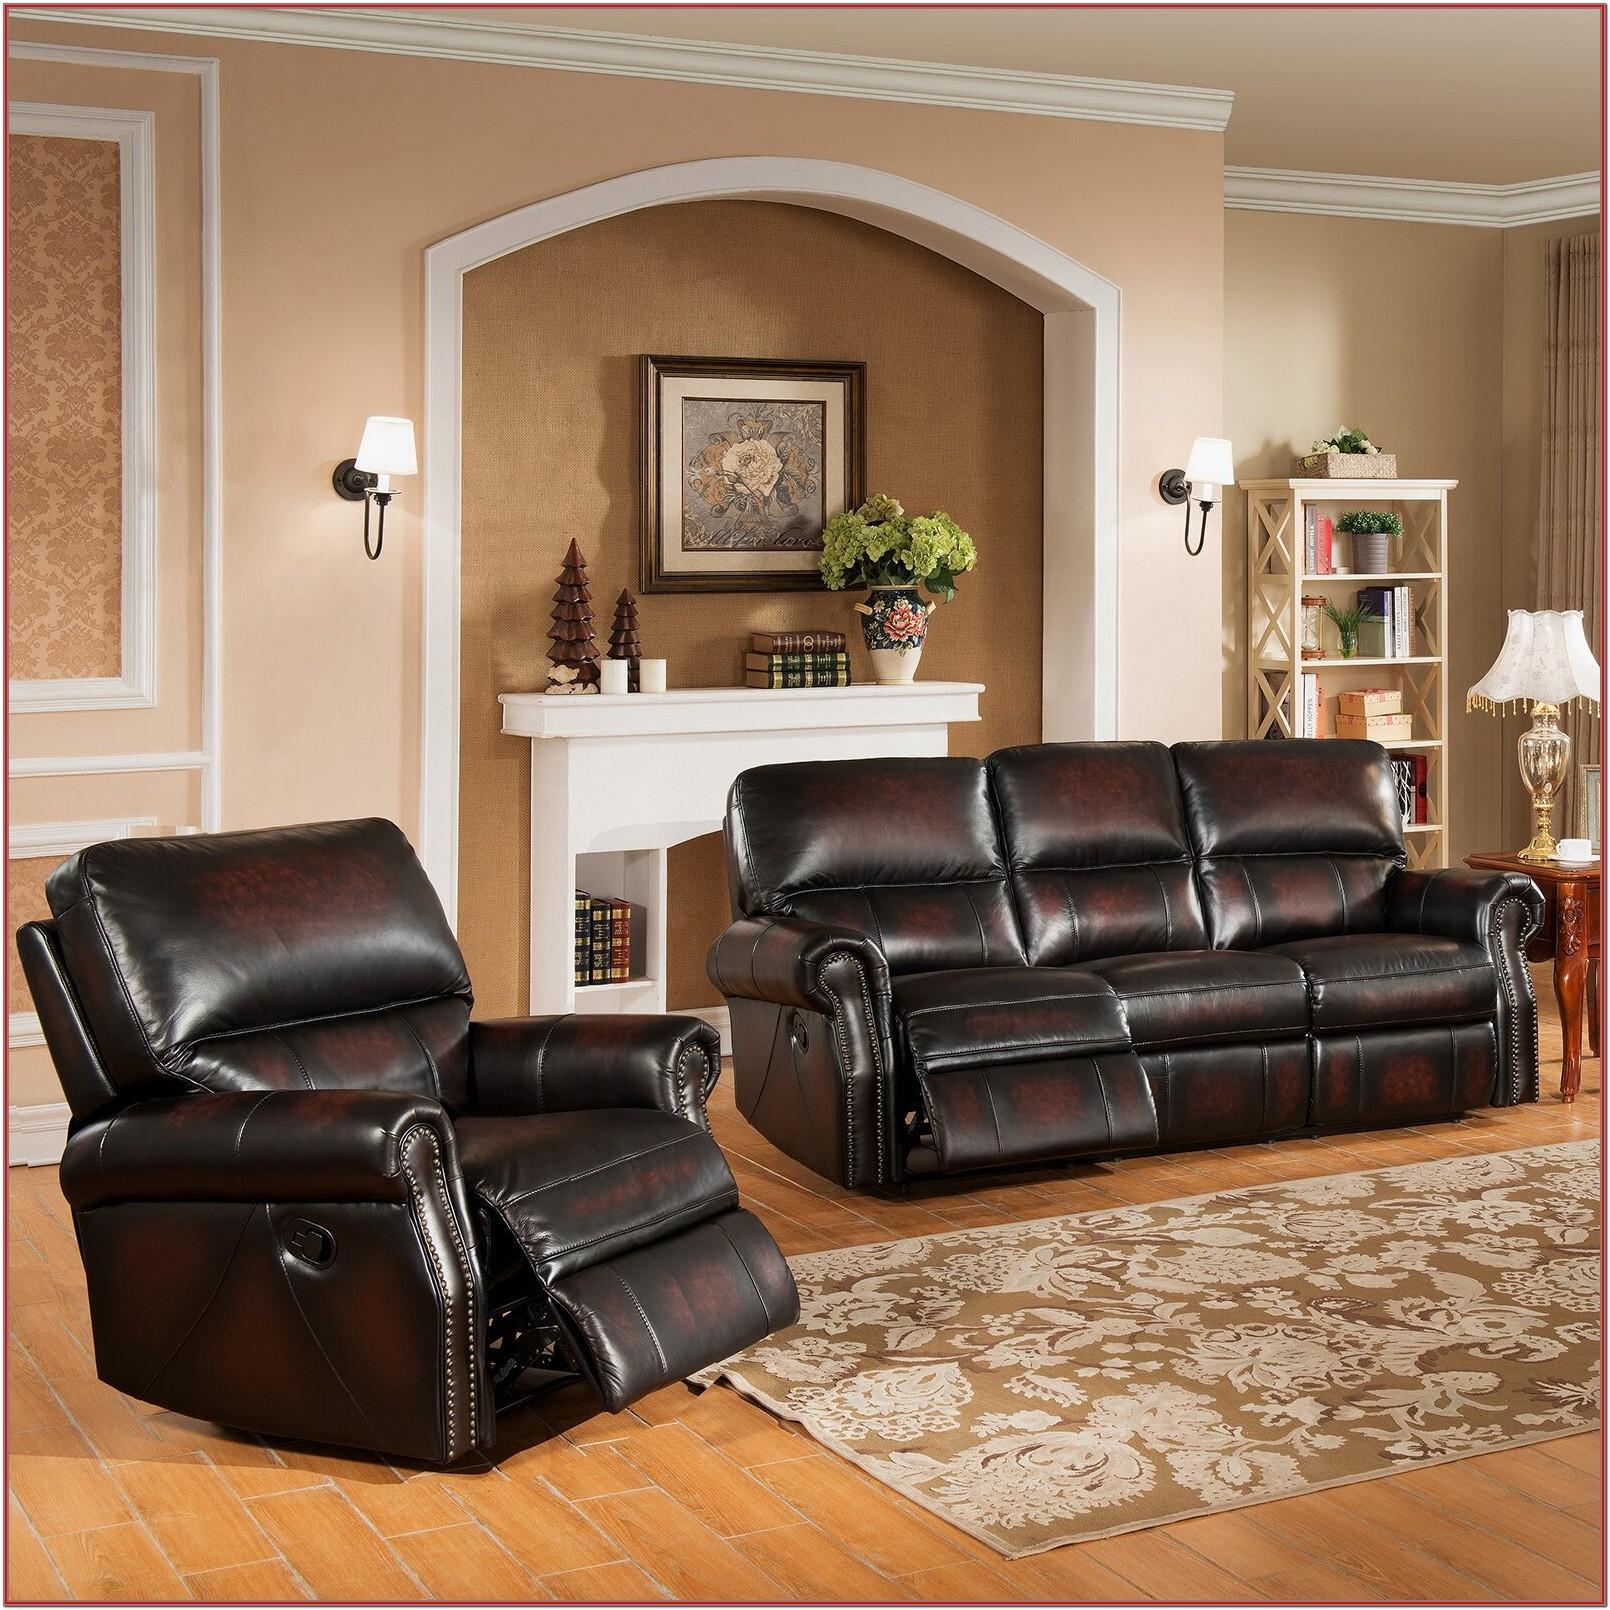 Wayfair Furniture Living Room Sets